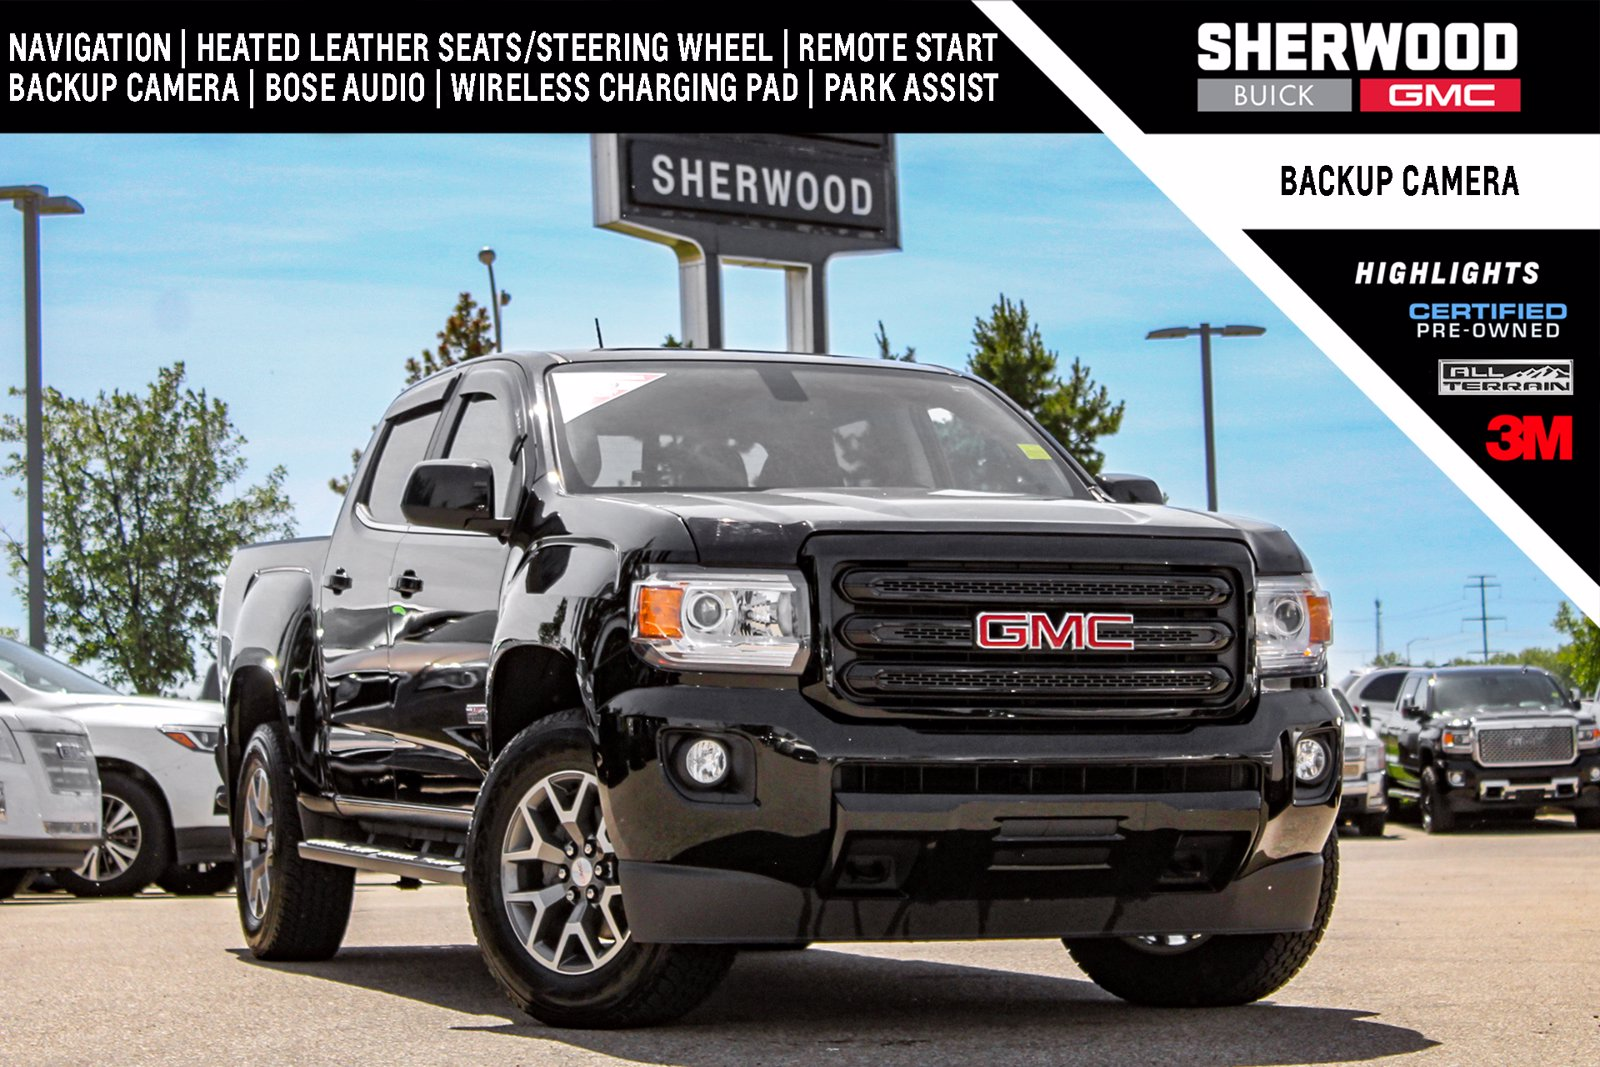 Certified Pre-Owned 2019 GMC Canyon SLT All Terrain 4WD Crew Cab Pickup